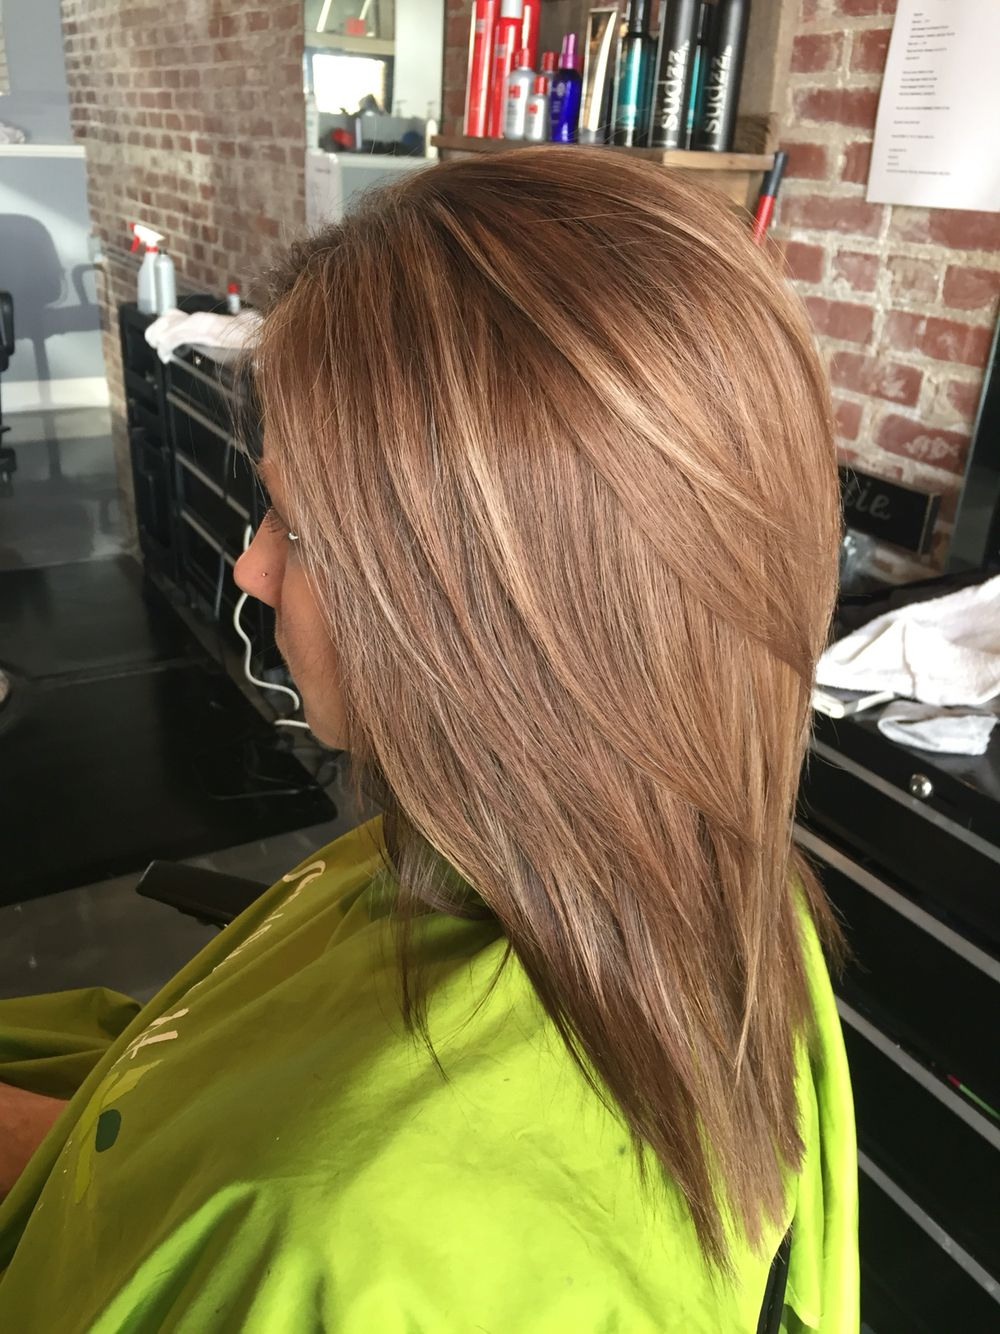 30 balayage hair color ideas with blonde brown and caramel 30 balayage hair color ideas with blonde brown and caramel highlights pmusecretfo Images